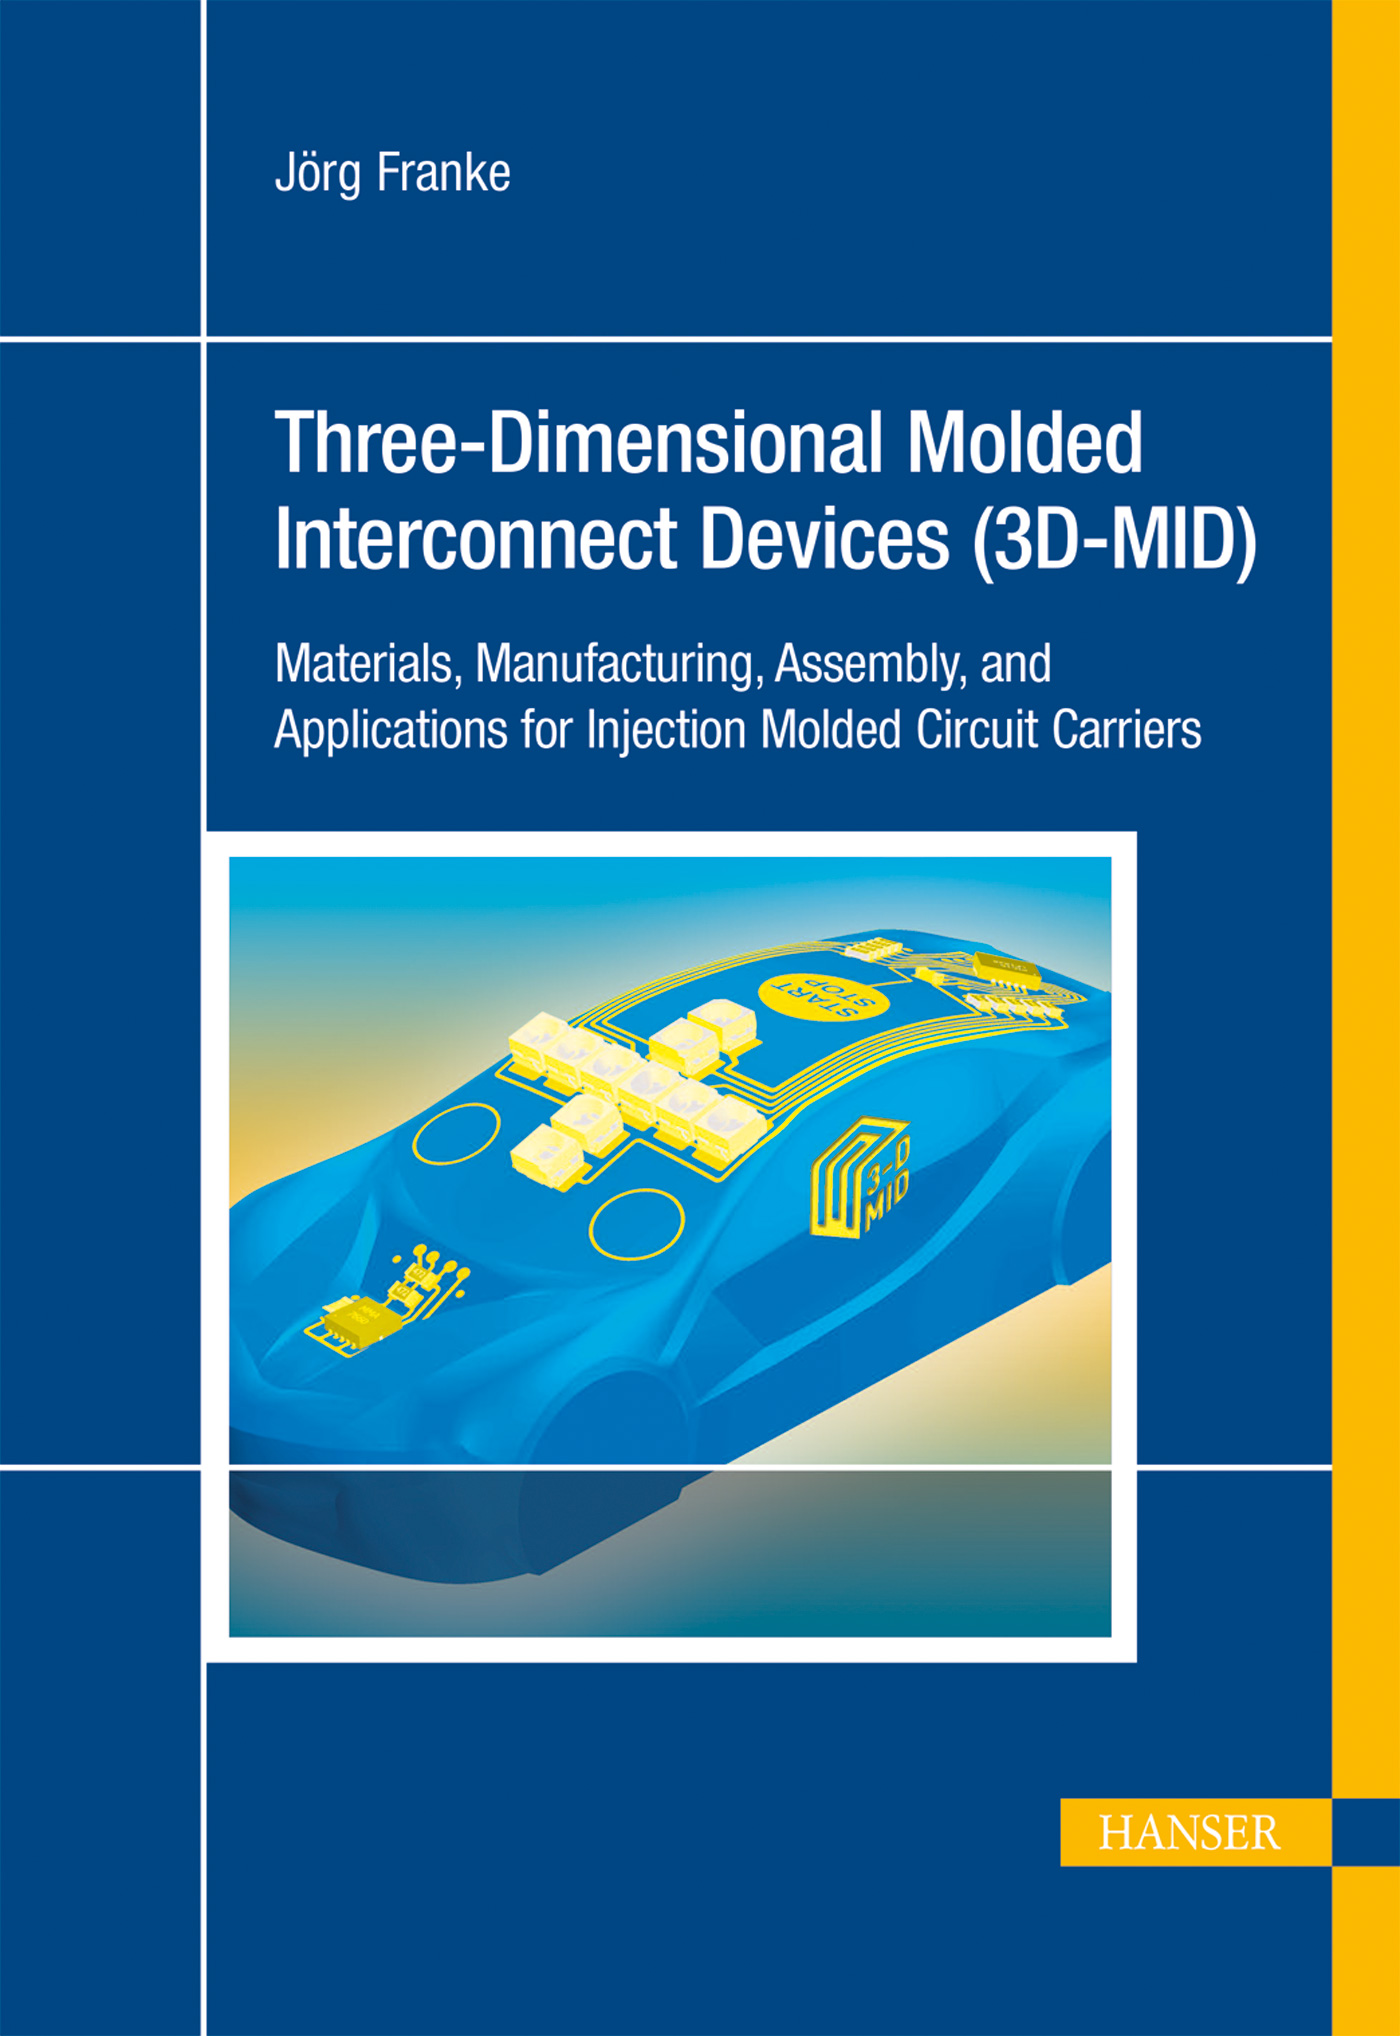 Three-Dimensional Molded Interconnect Devices (3D-MID), 978-1-56990-551-7